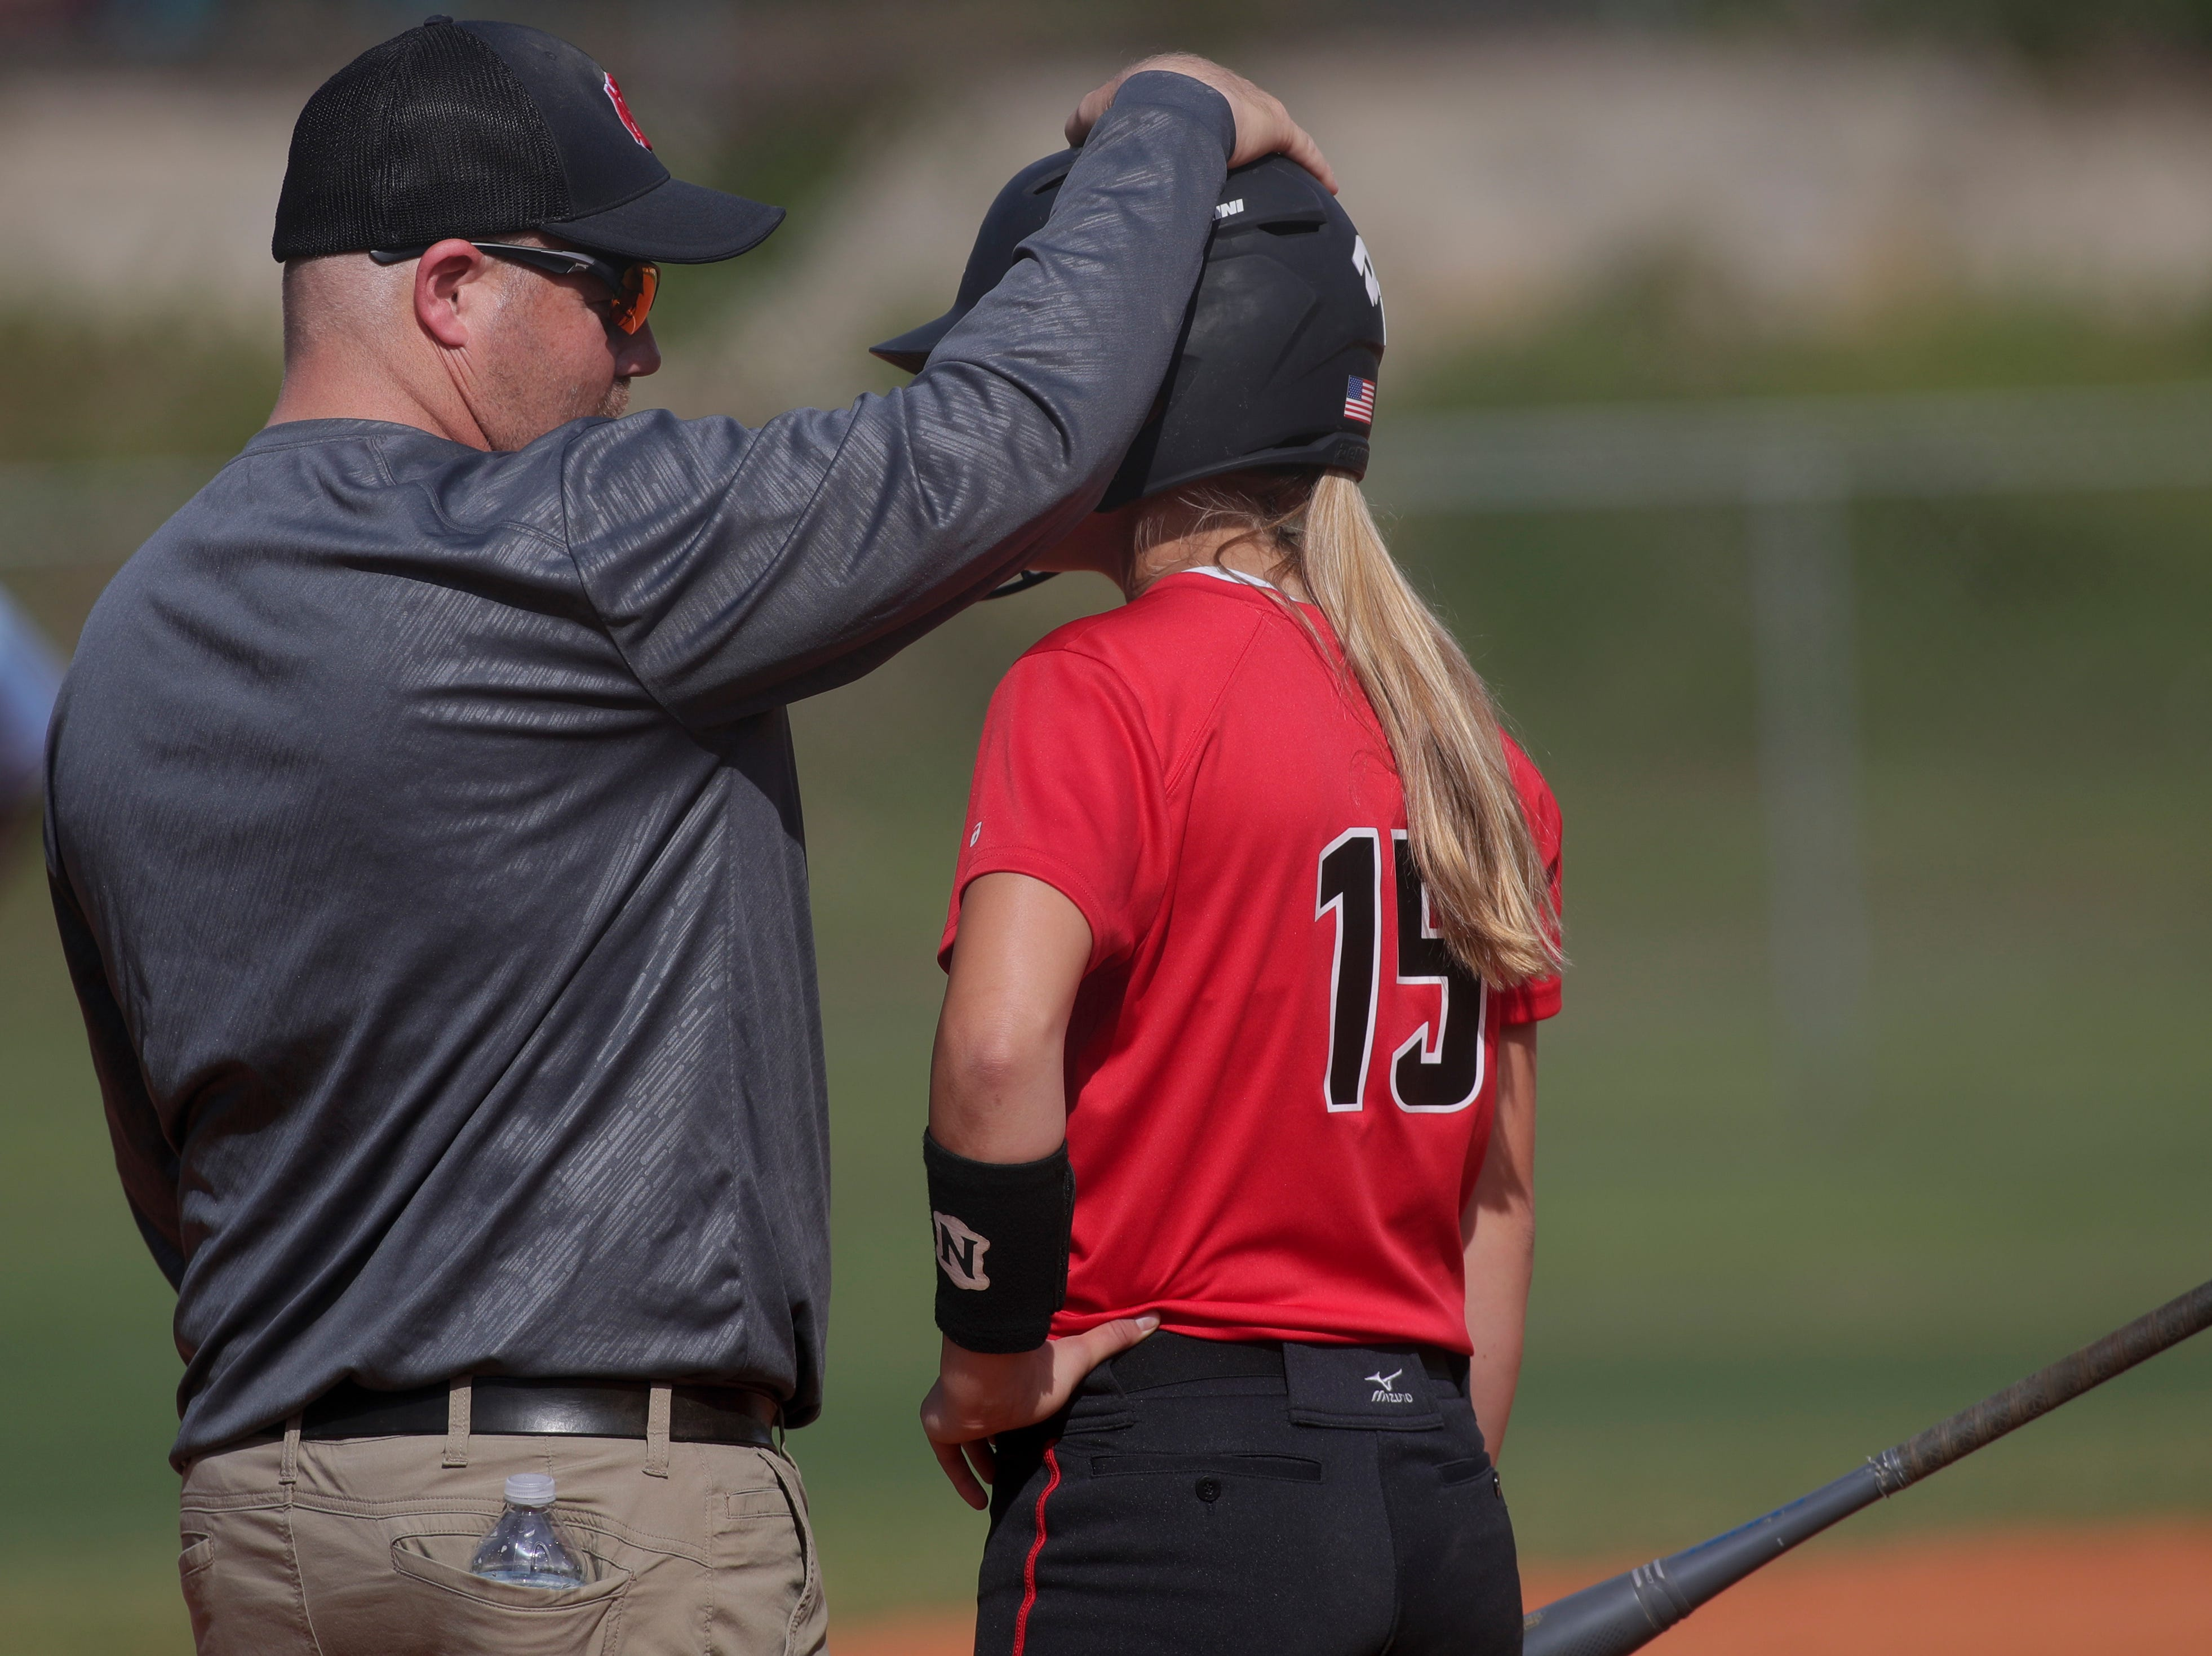 NFC softball coach Dennis Gorham gives Emma Brice (15) a pep talk before hitting during the 1-3A regional final game between NFC and University Christian at NFC Tuesday, May 14, 2019. UC defeated NFC 16-11 to advance to the state tournament.